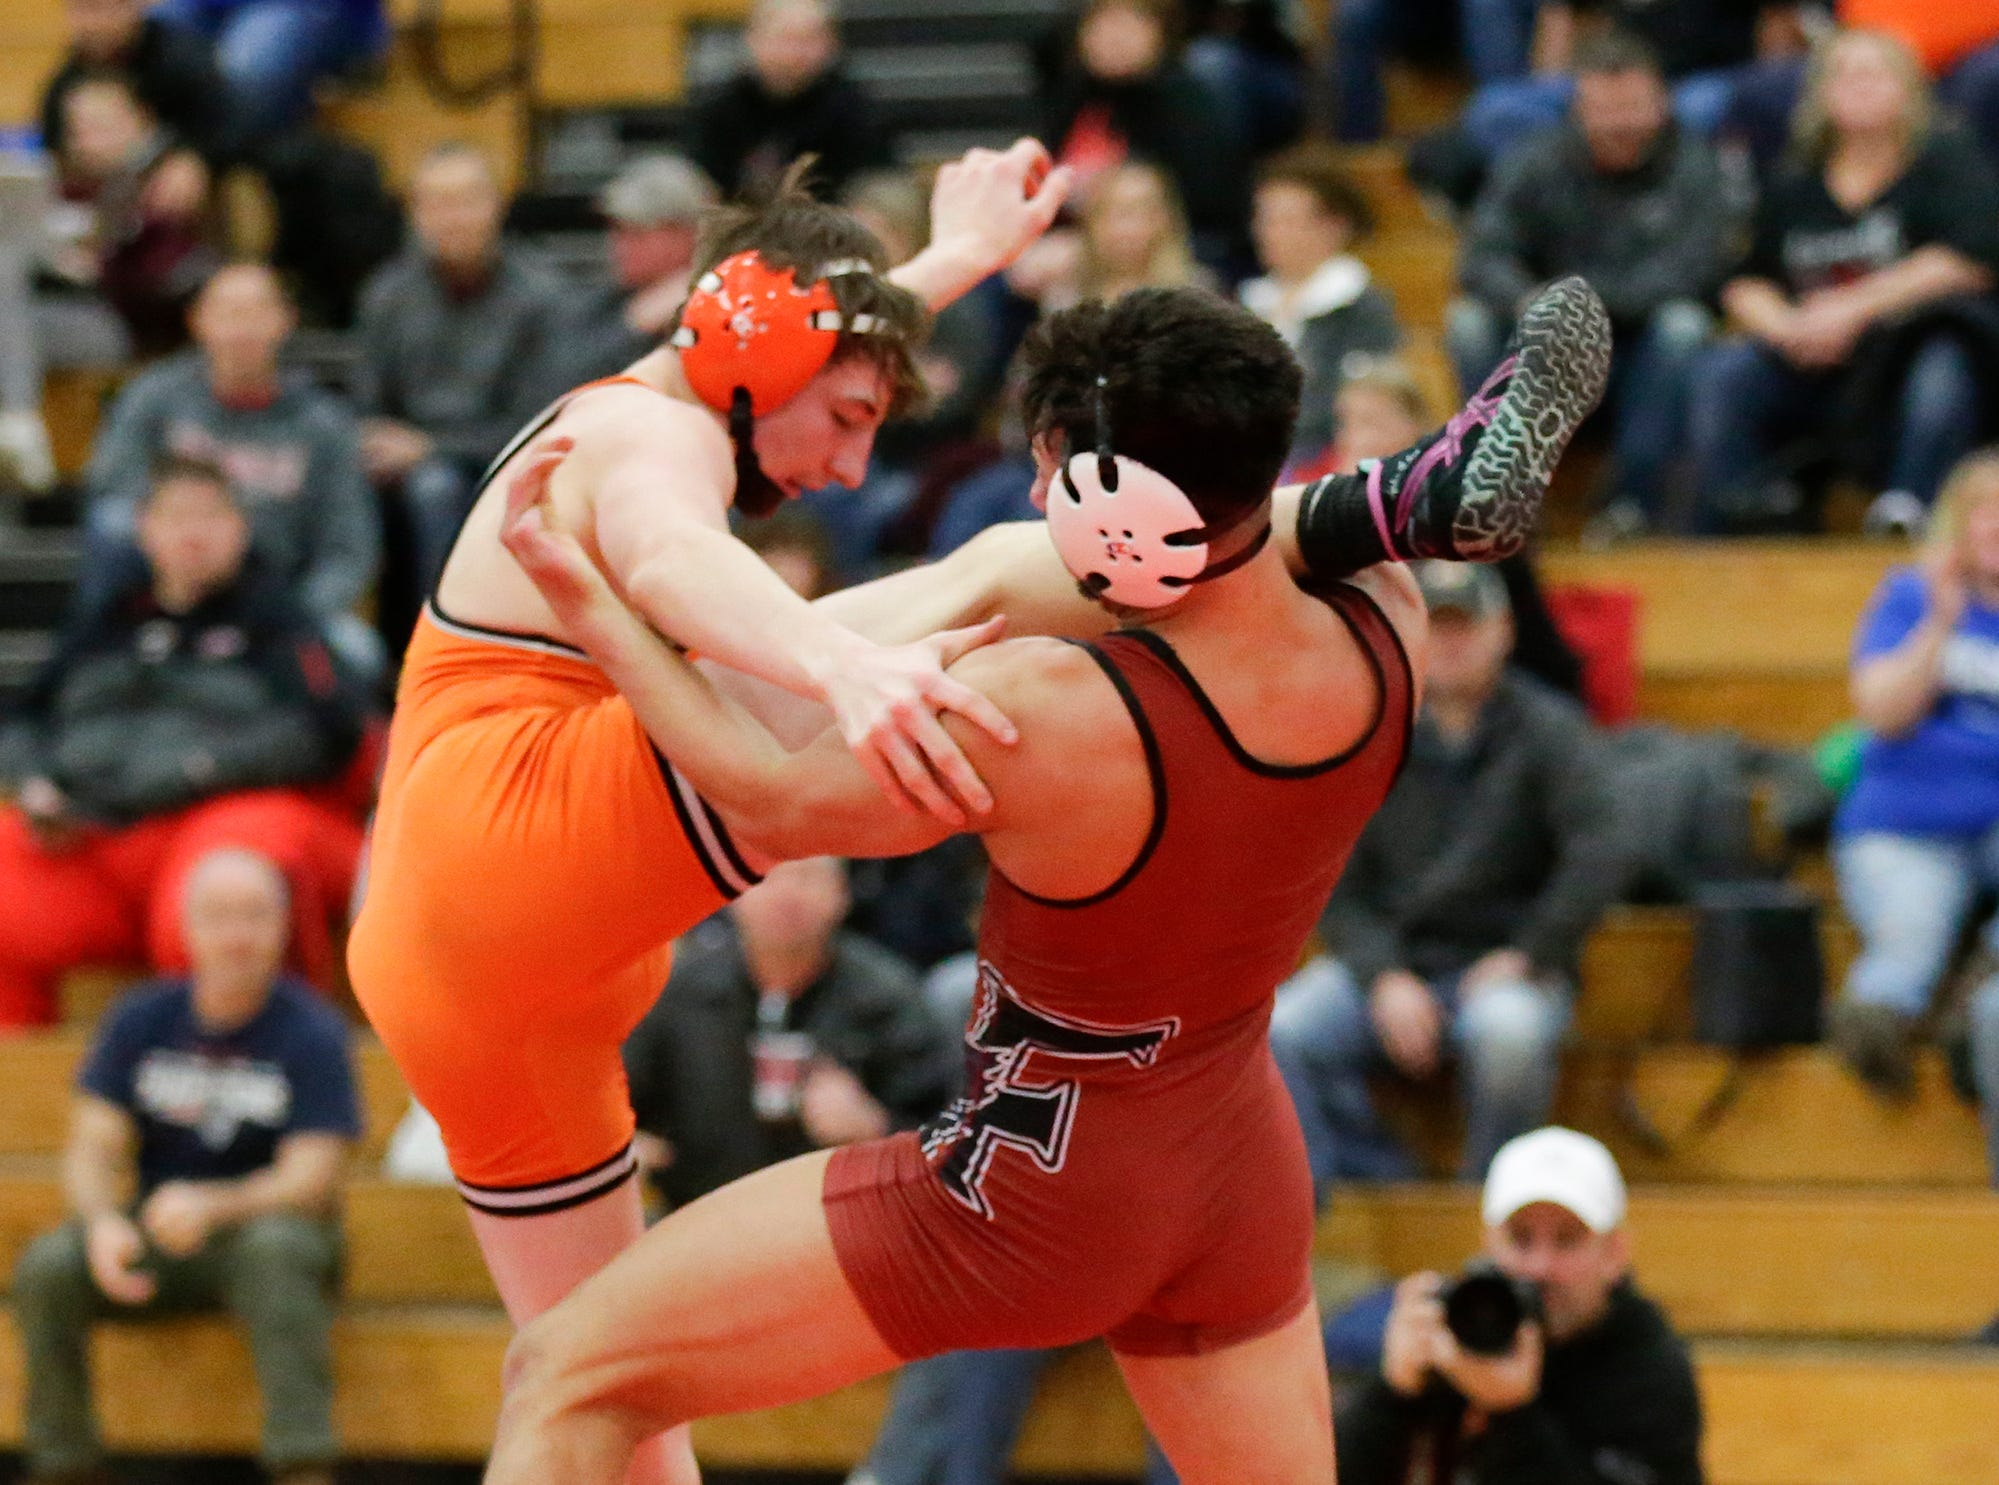 Kaukauna High School's John Diener wrestles Fond du Lac High School's Issac Ortegon in a 138-pound match during the Fox Valley Association wrestling championship meet held Saturday, Feb. 2, 2019, in Fond du Lac. Ortegon won the match by a score of 8-5.